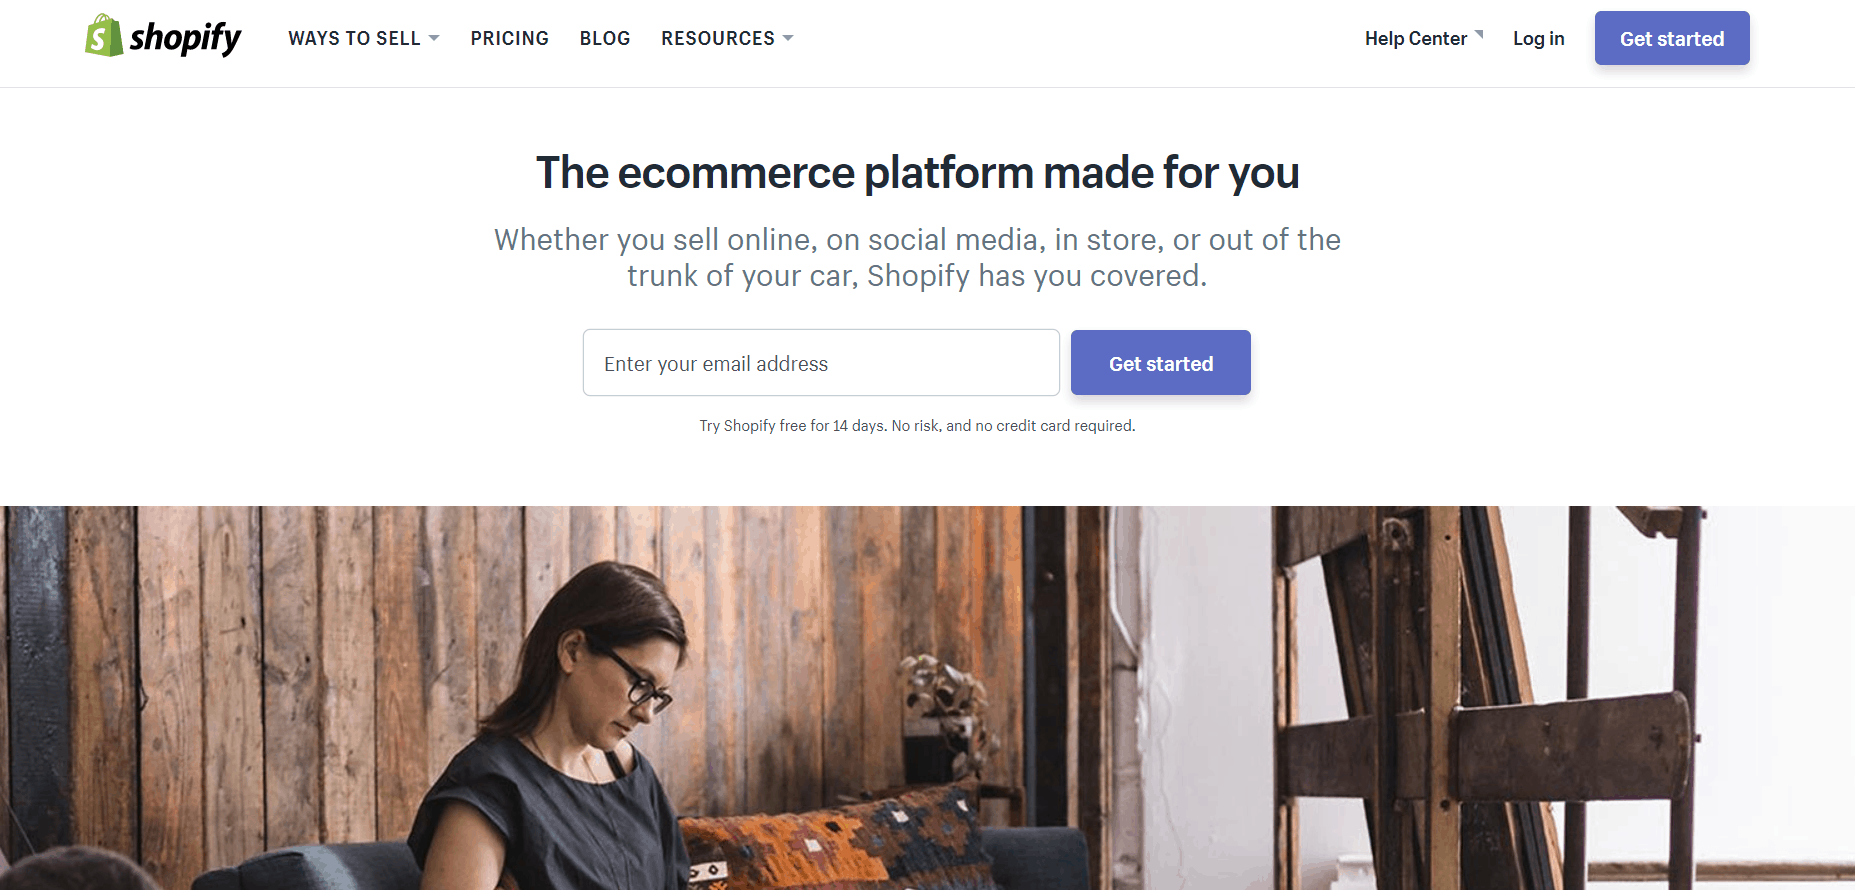 Shopify uses Ruby on Rails